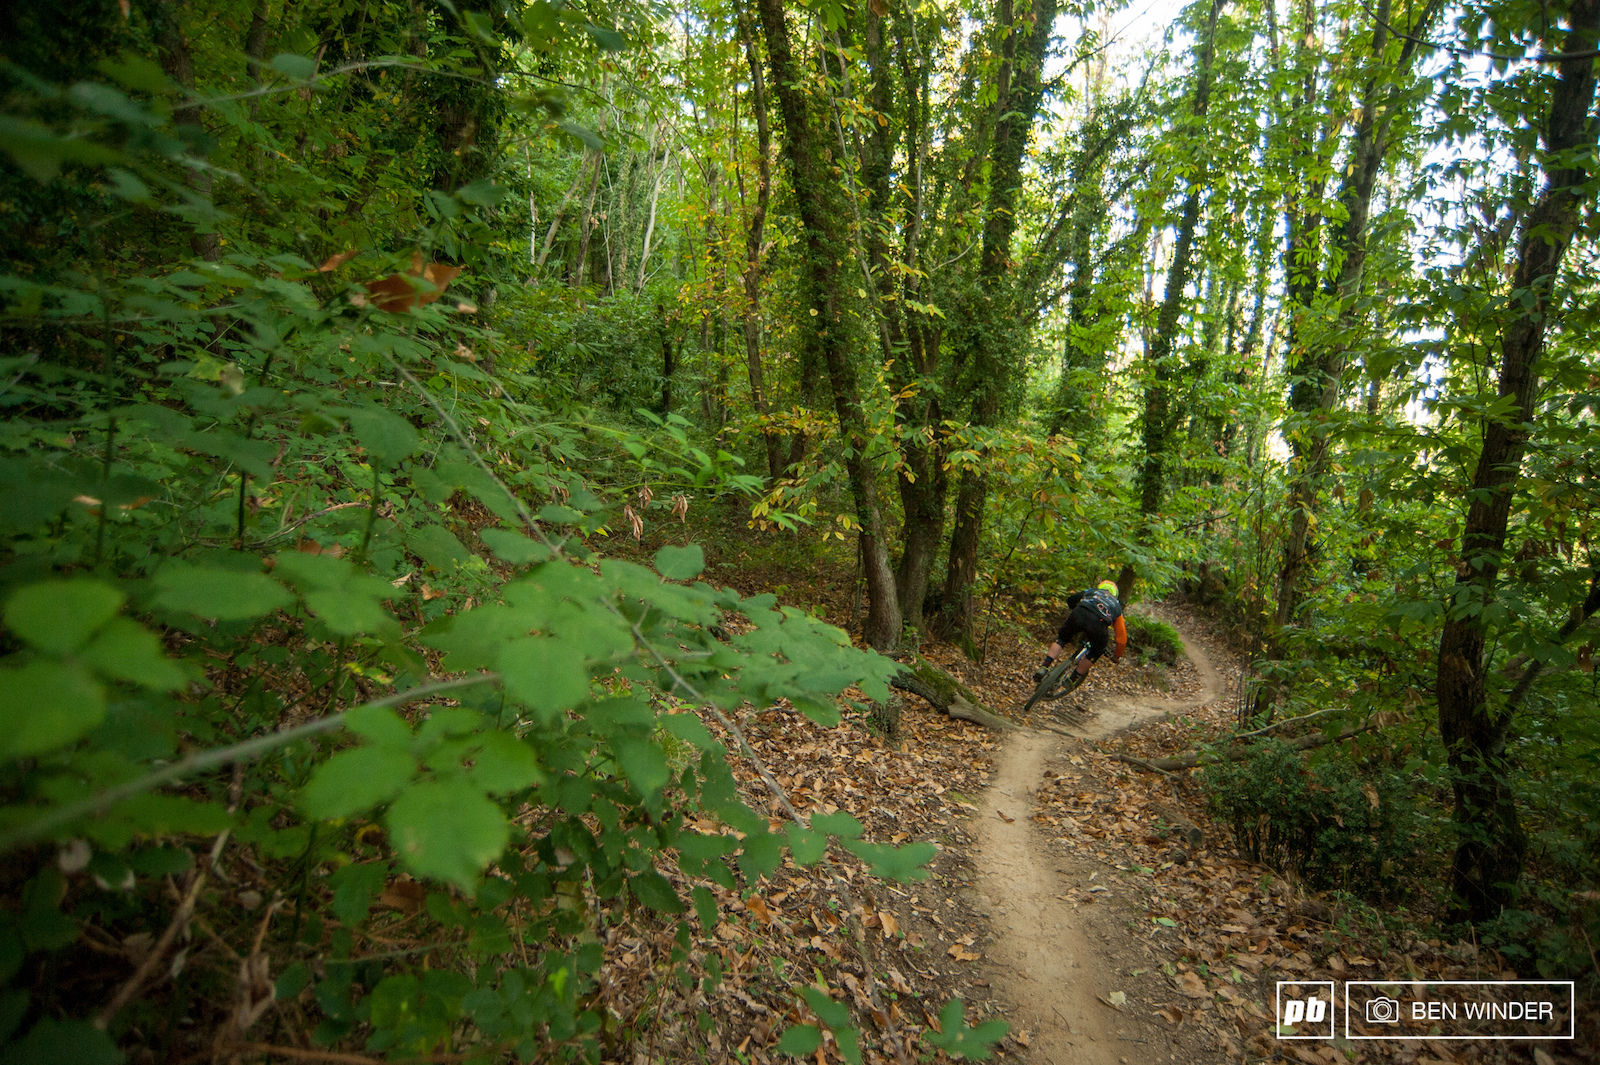 In the sections of trail that don t require as much breaking the dirt is perfect. Singletrack that dreams are made of.